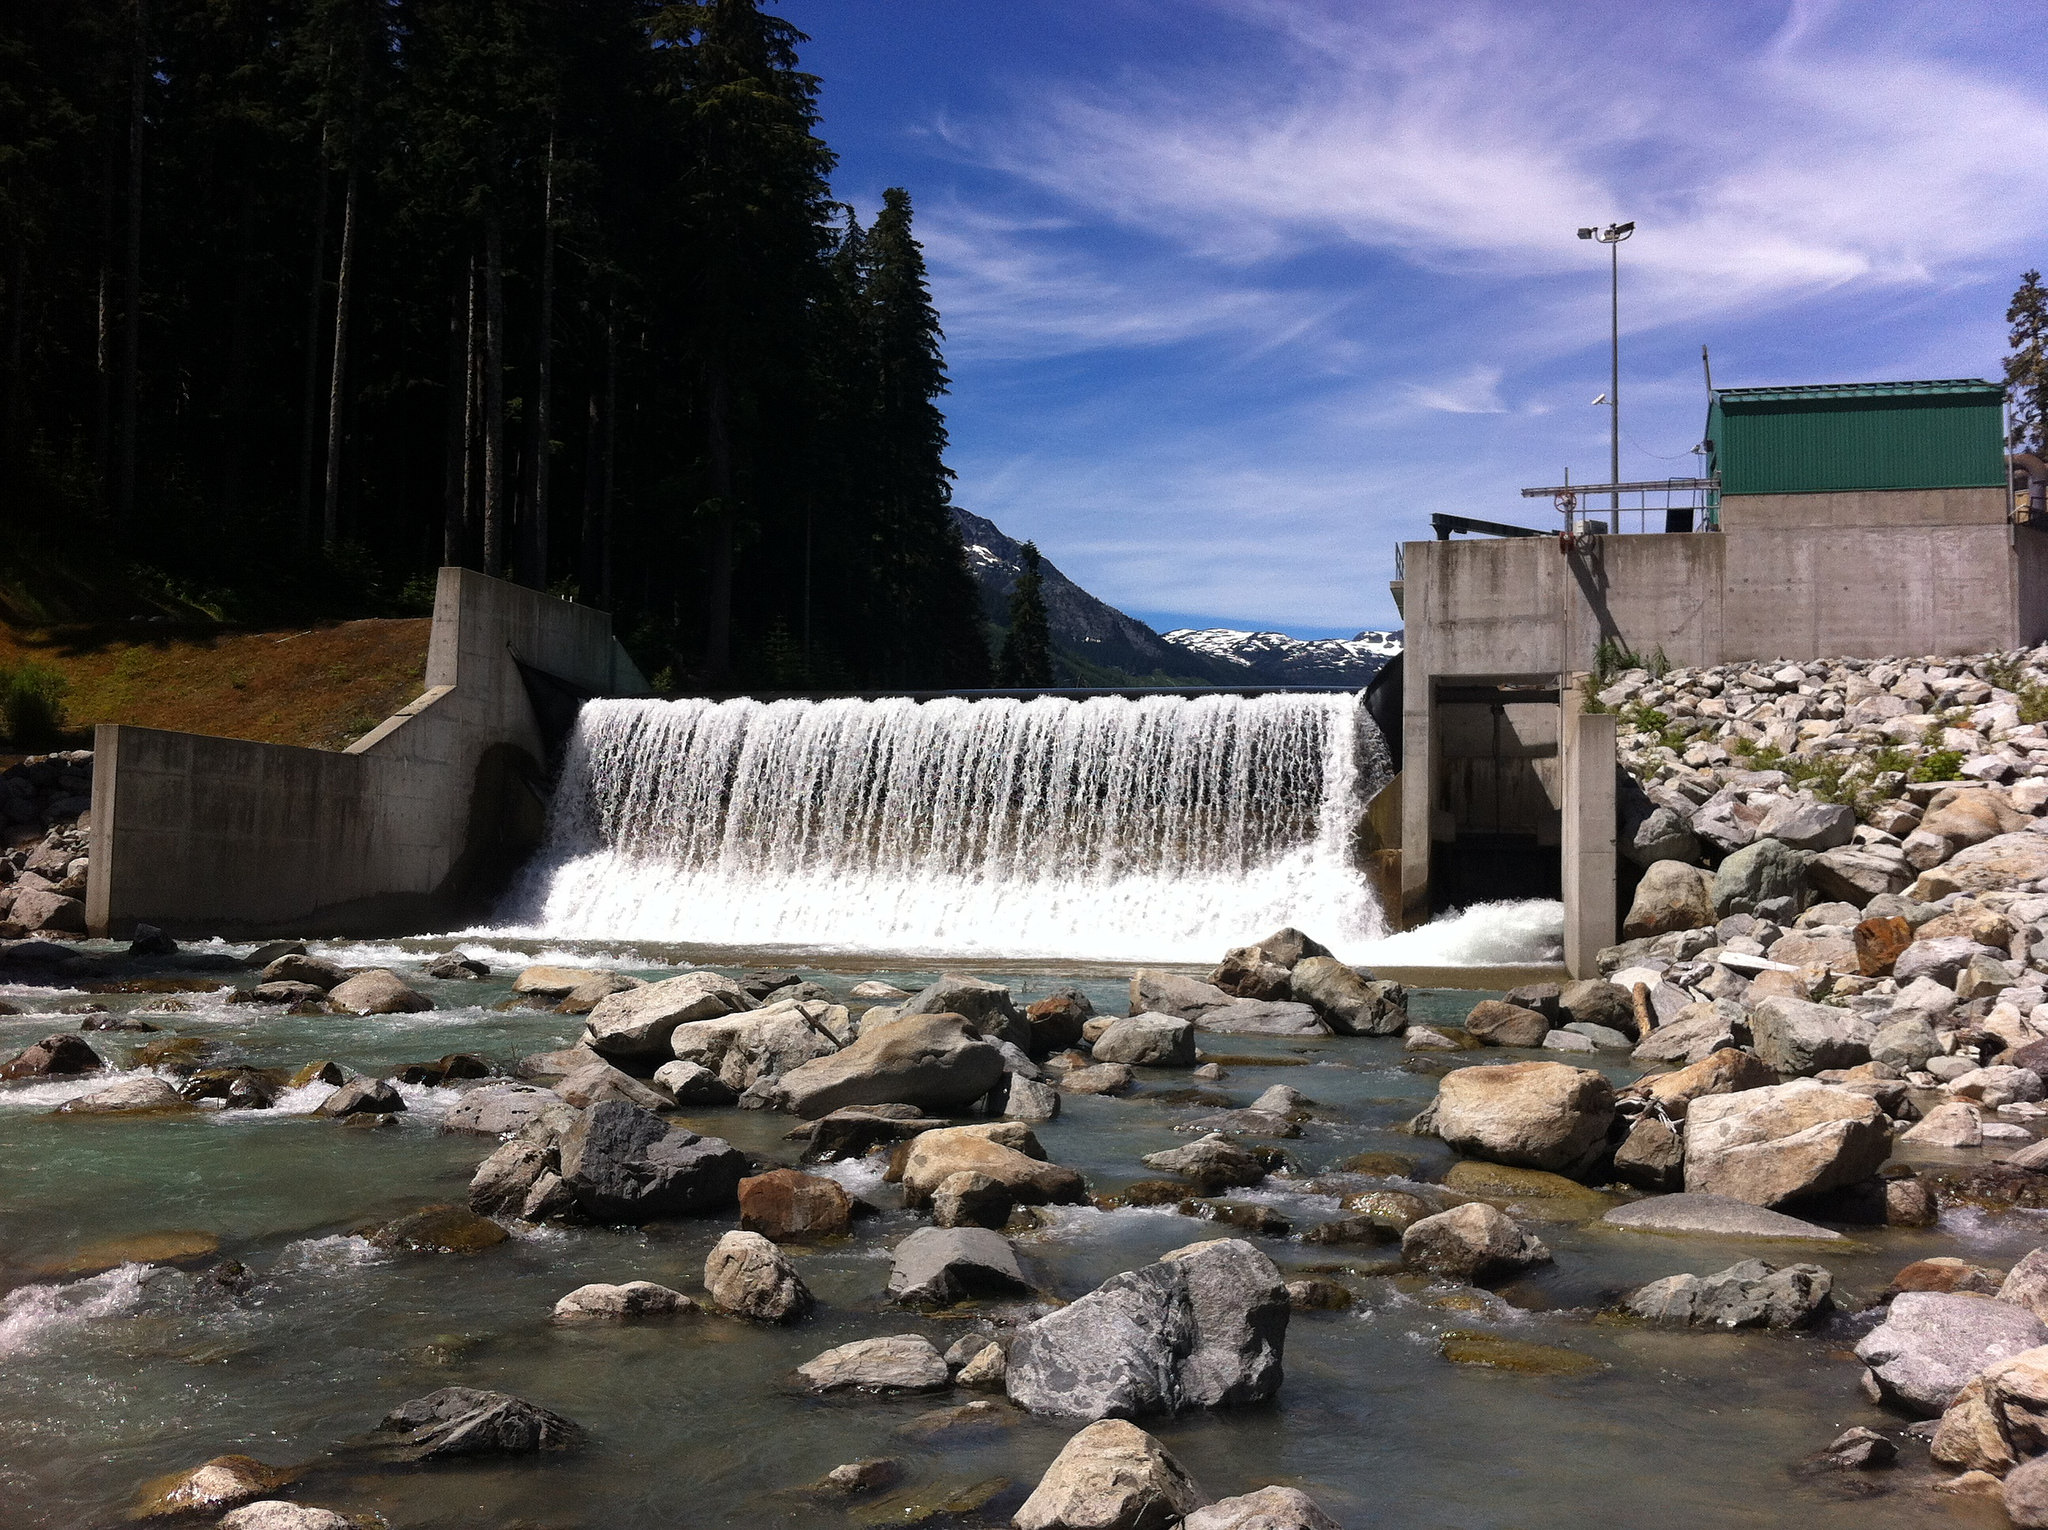 Small hydroelectric dams increase globally with little research ...